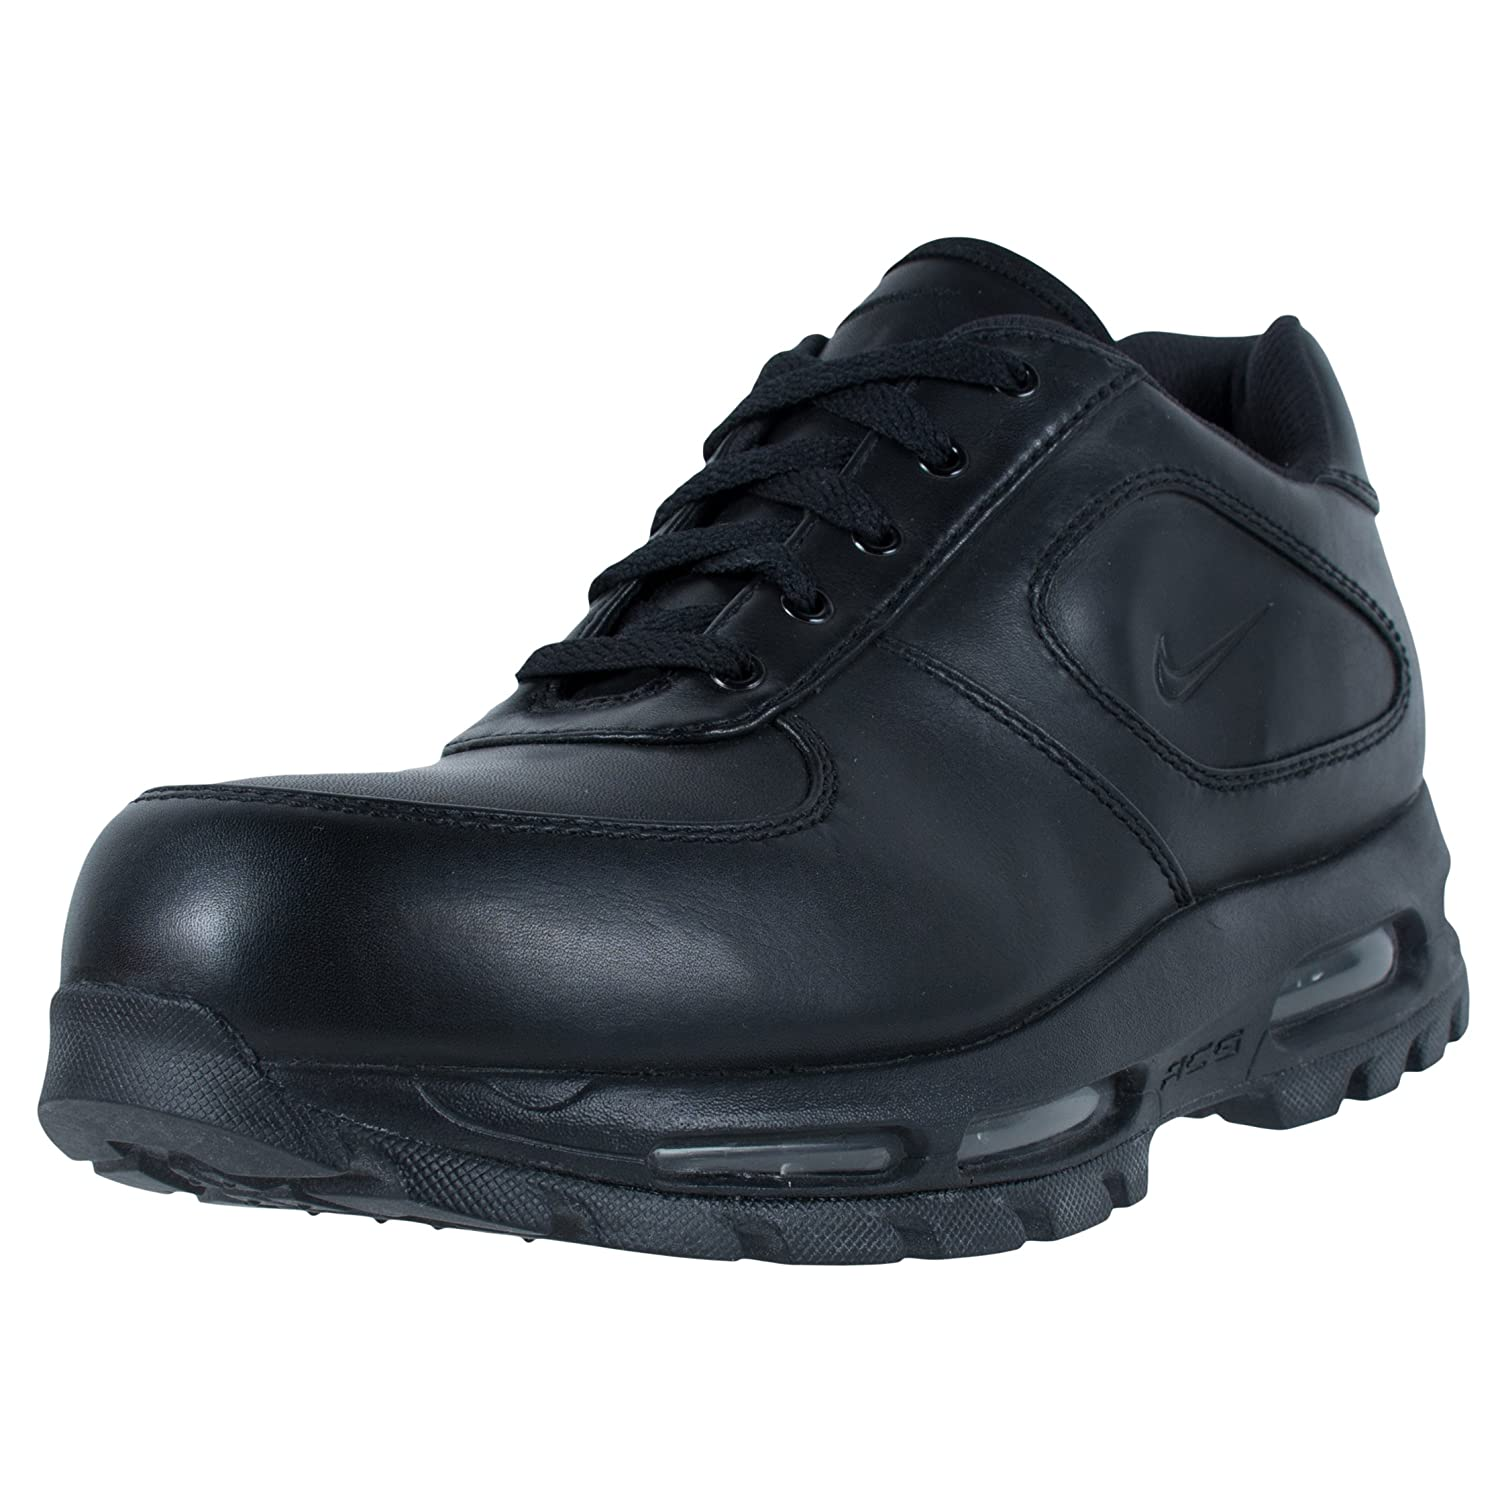 info for 080ca 30f78 NIKE AIR MAX GOADOME LOW LEATHER ACG BOOTS BLACK BLACK 312477 001   Amazon.ca  Shoes   Handbags